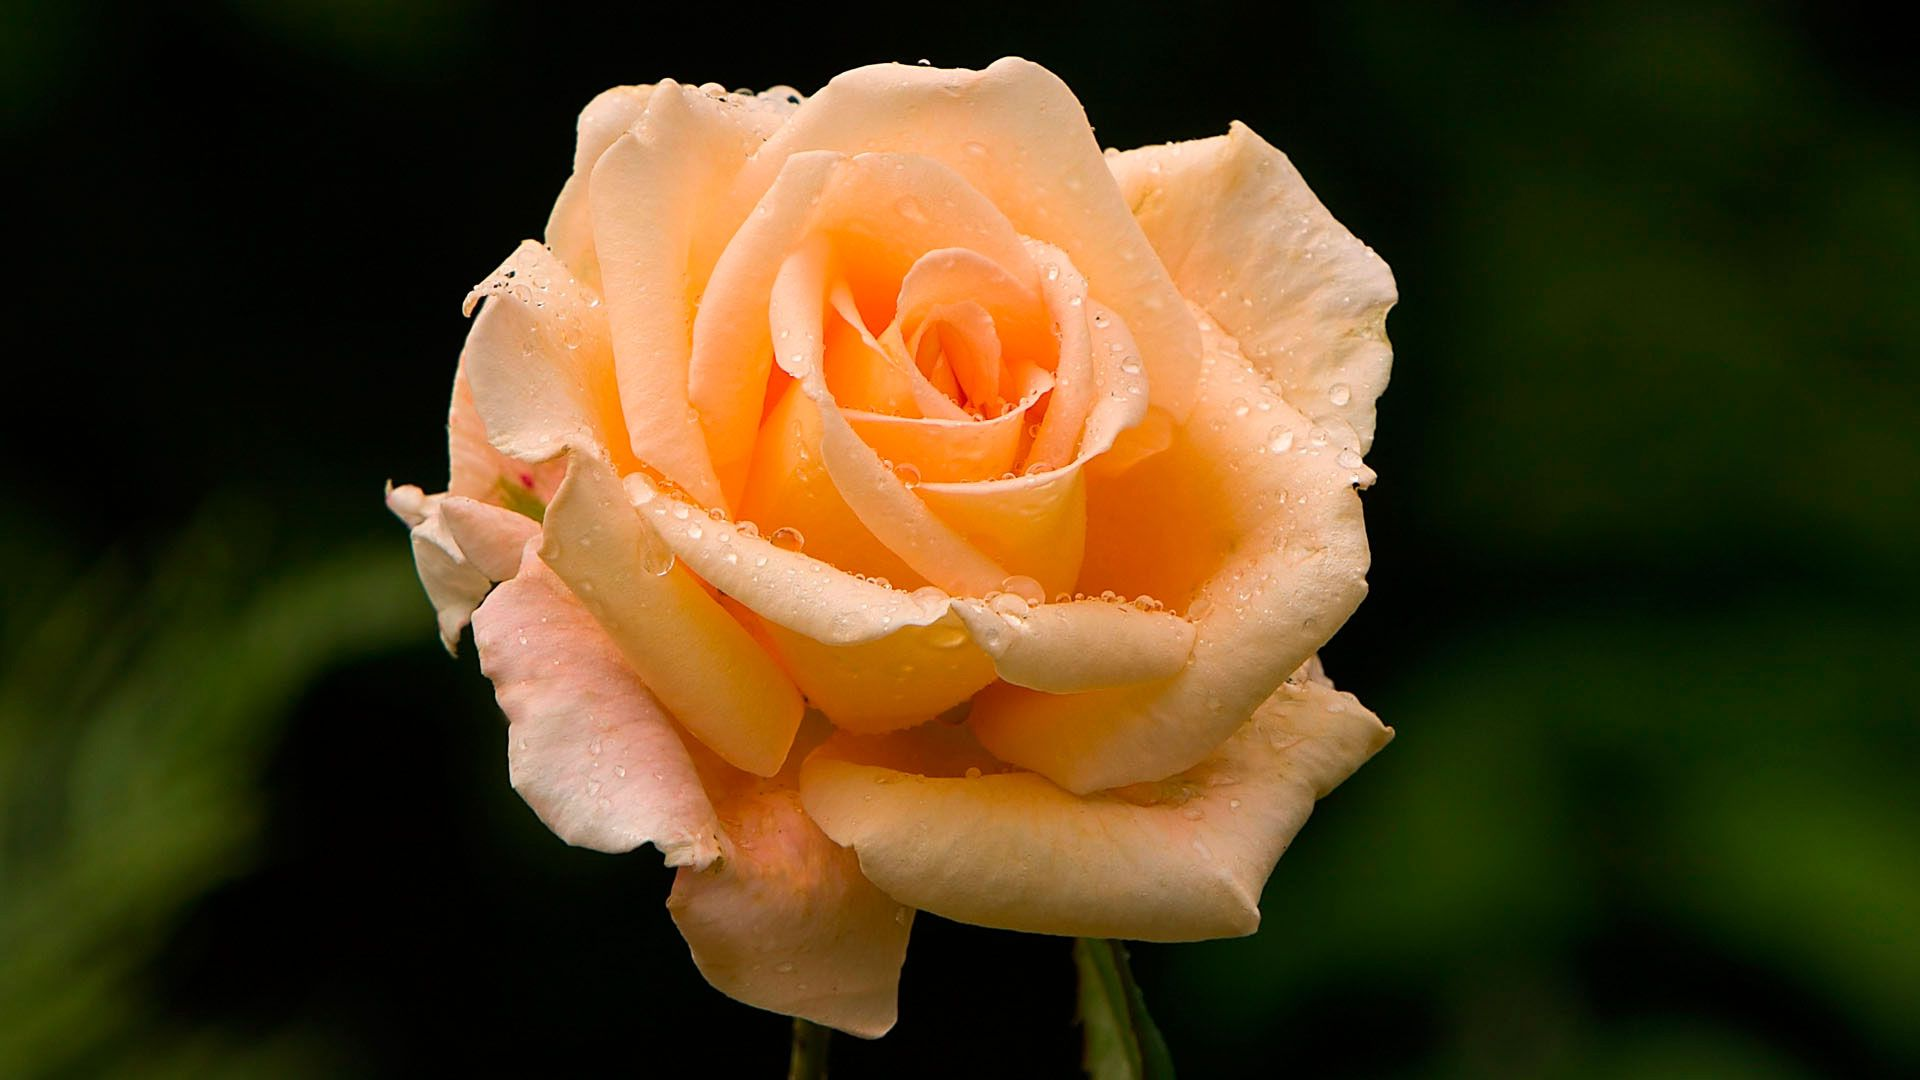 Beautiful Rose Free Wallpaper and Background